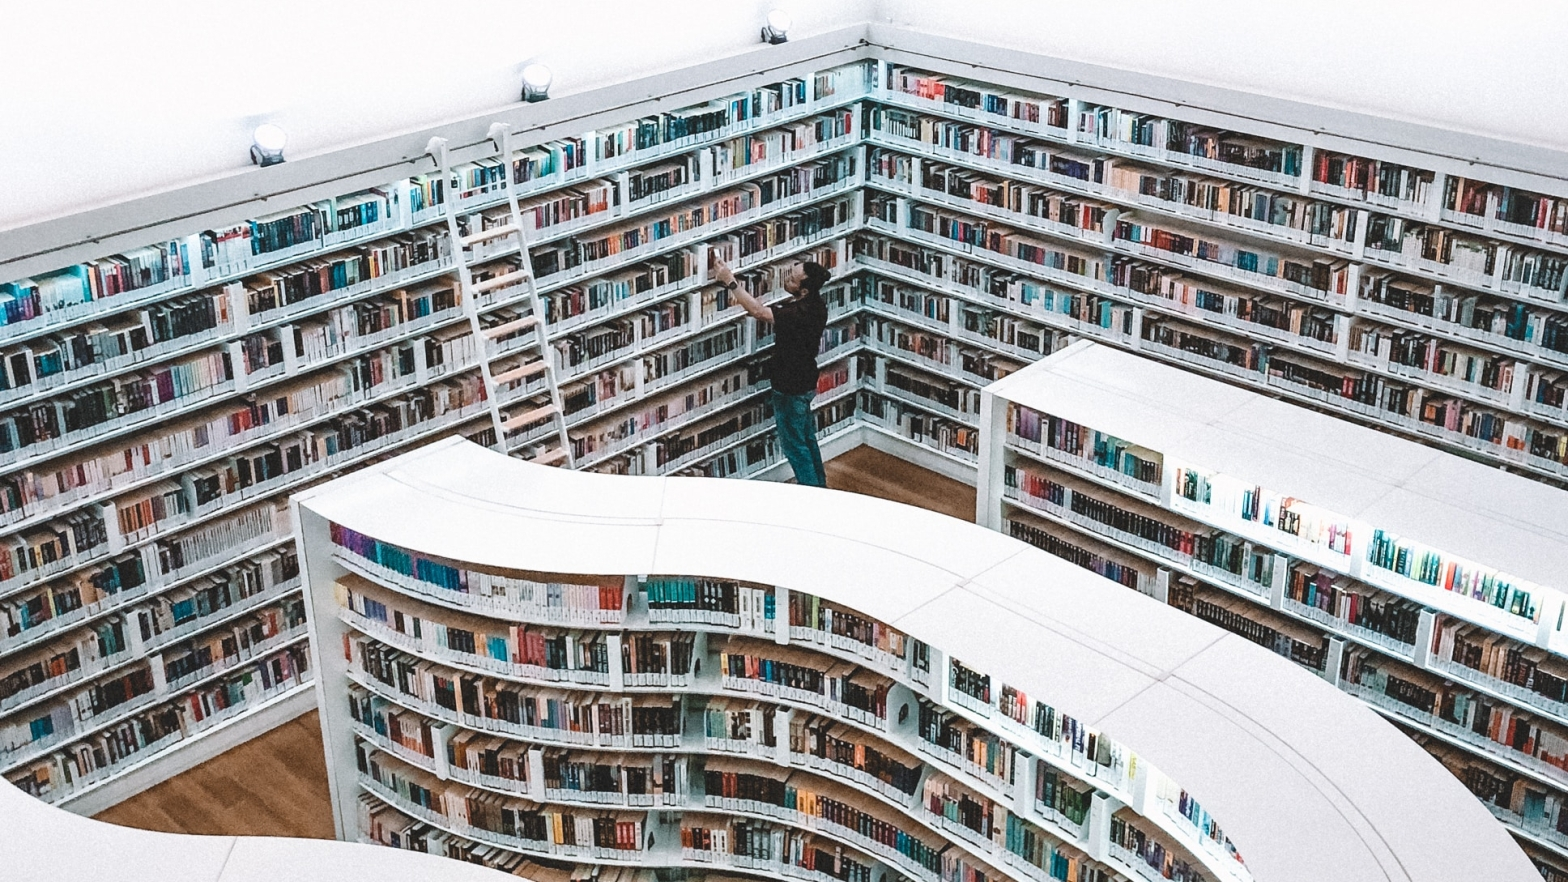 Man in library with white, wave-like shelves.